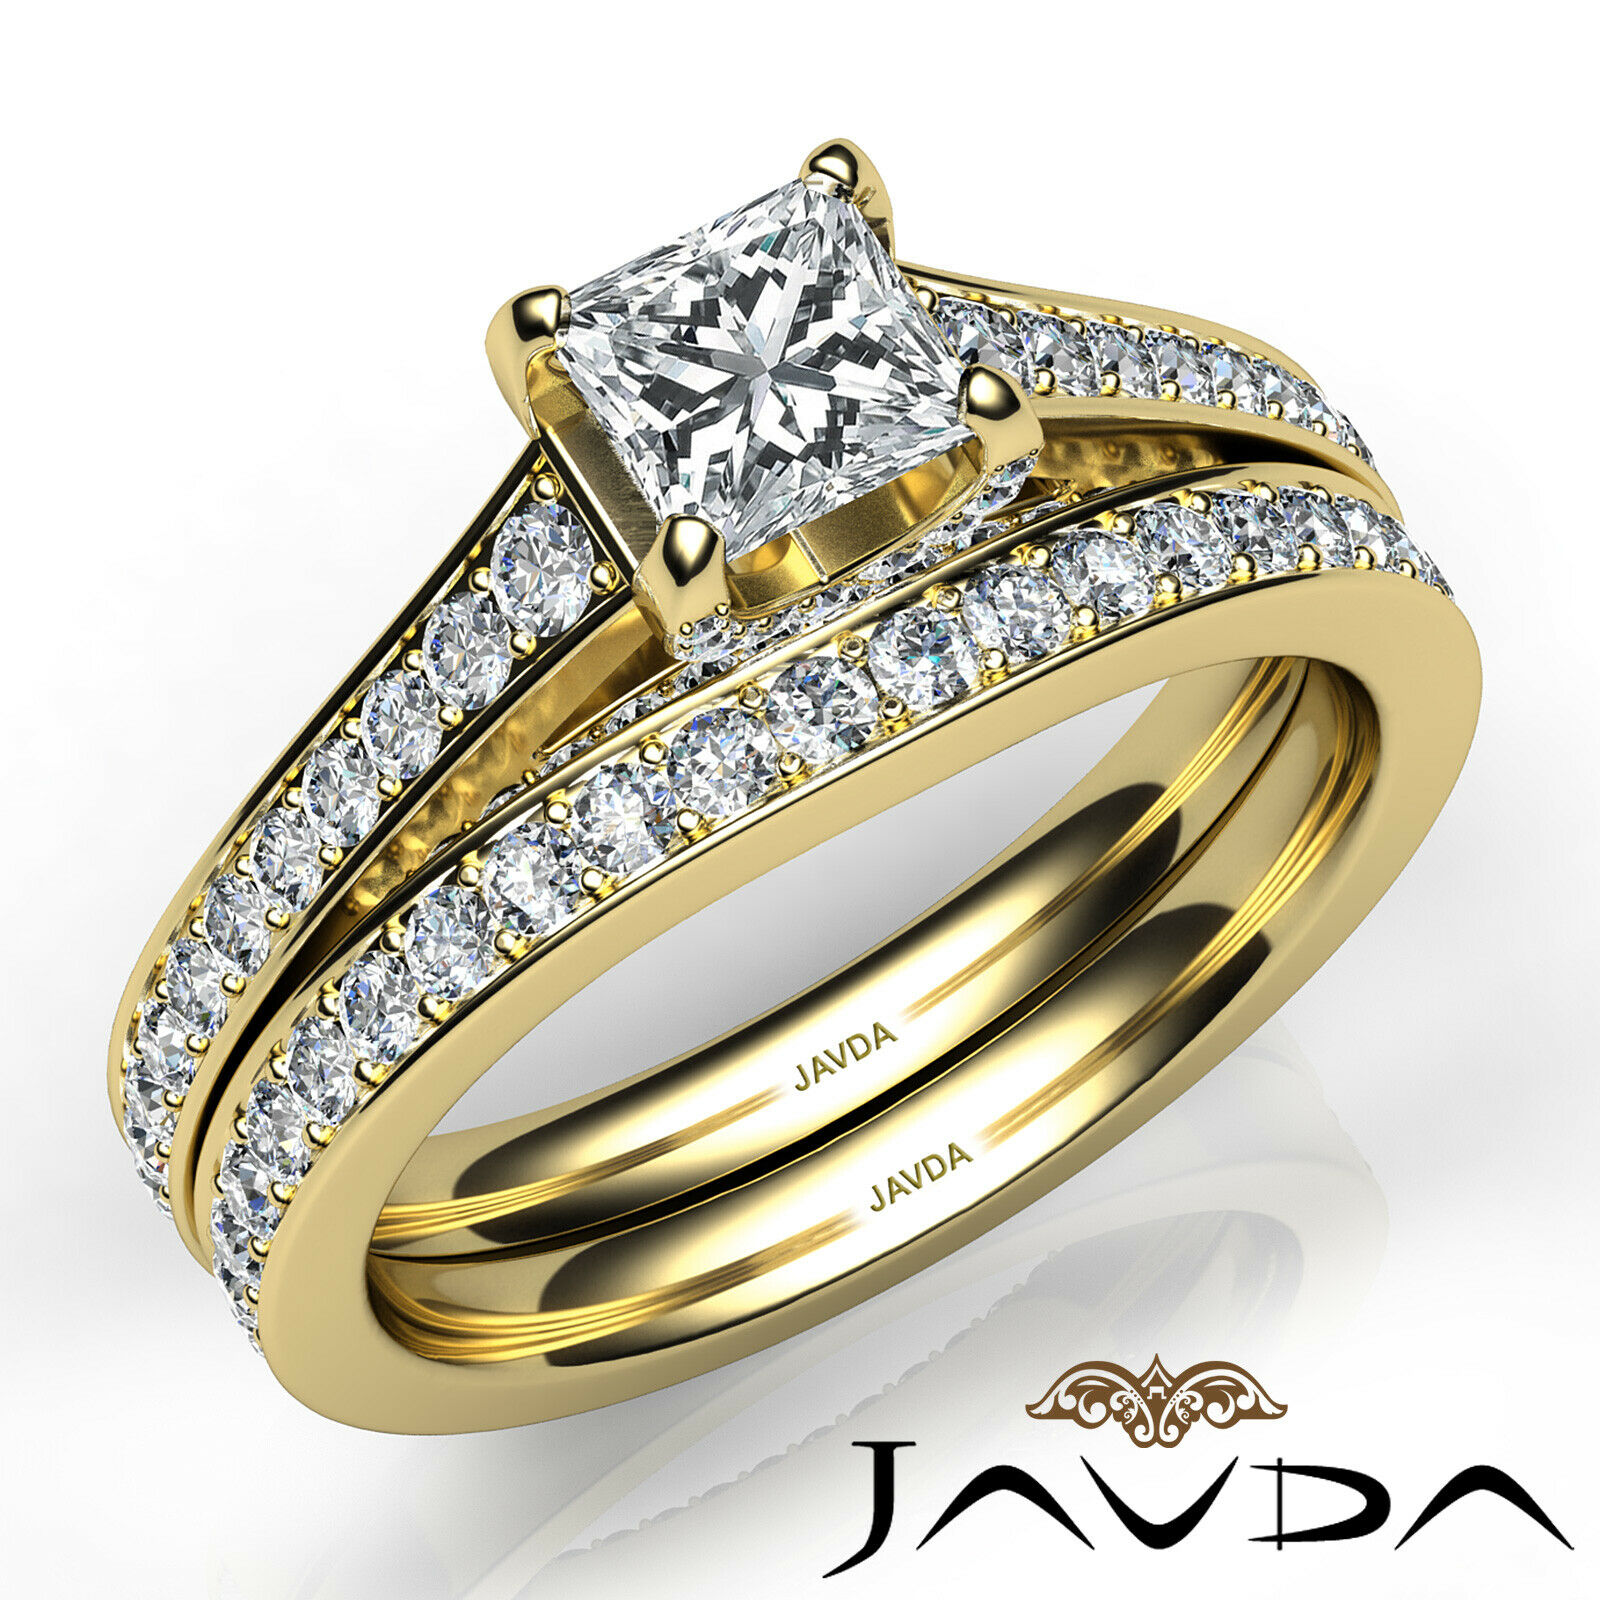 2.05ct Accent Bridge Pave Bridal Princess Diamond Engagement Ring GIA F-VS2 Gold 9